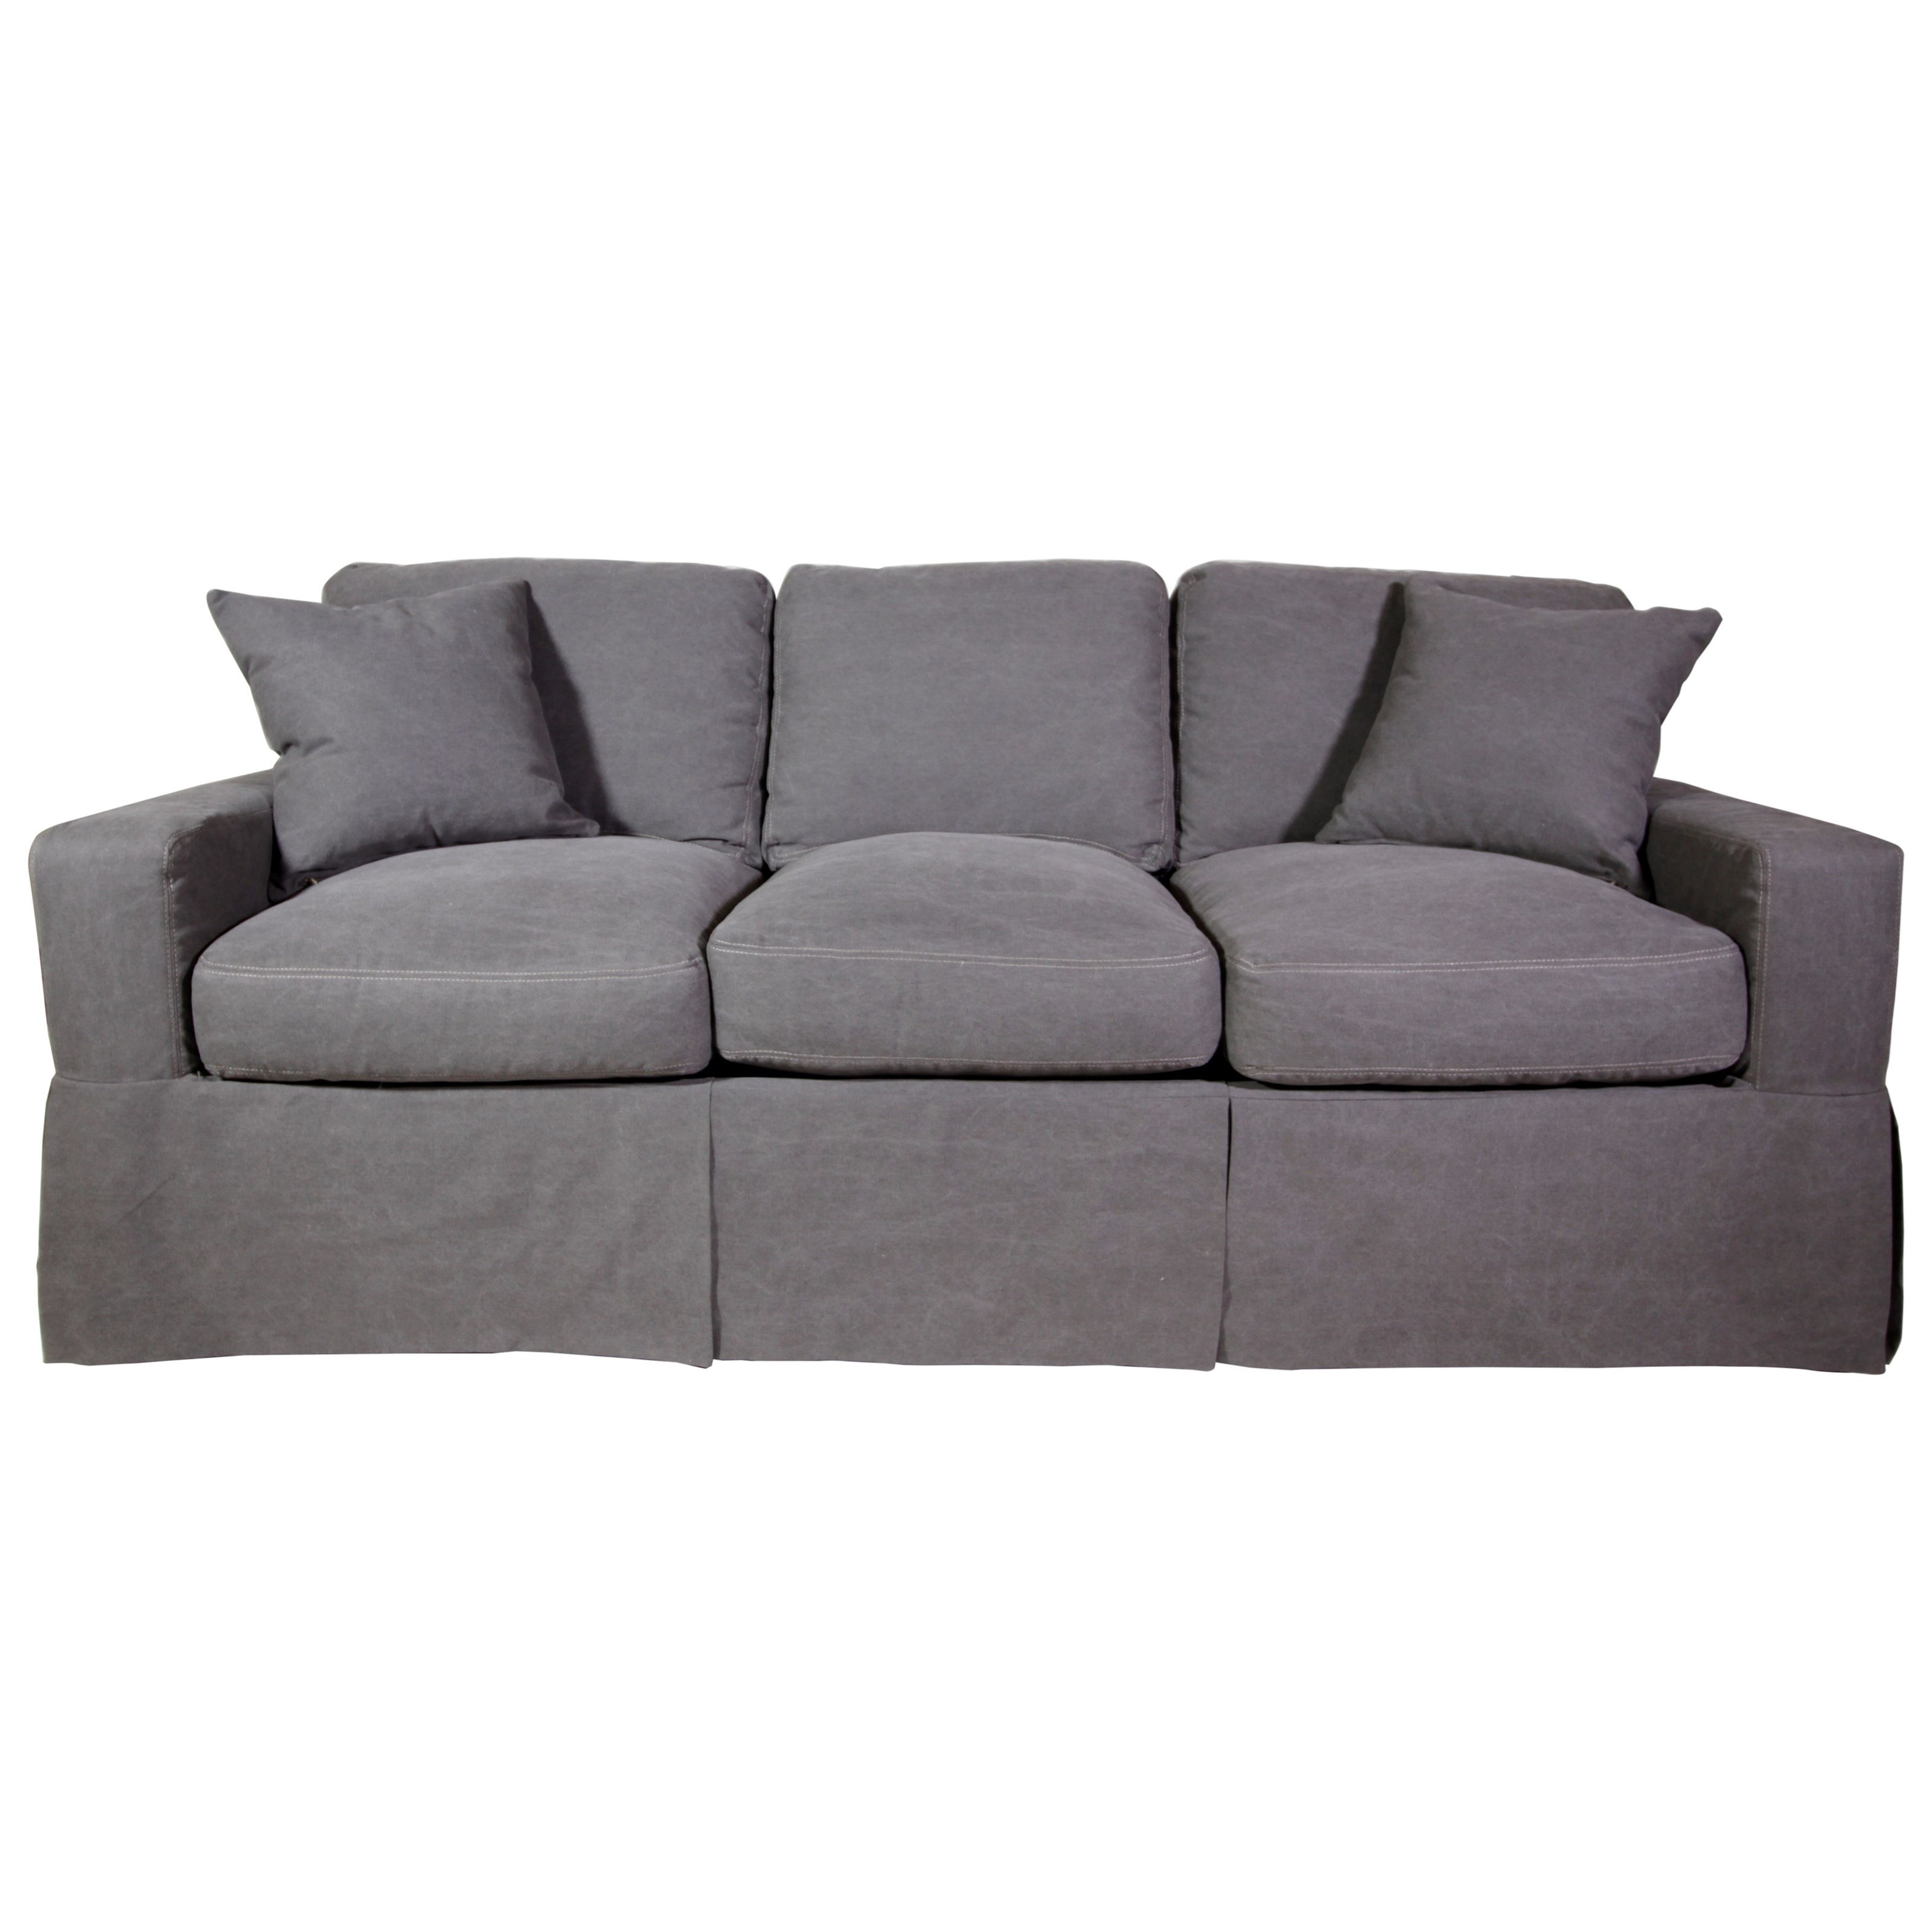 Synergy Home Furnishings Bahia Queen Sofabed - Item Number: 1205-40 4030-96